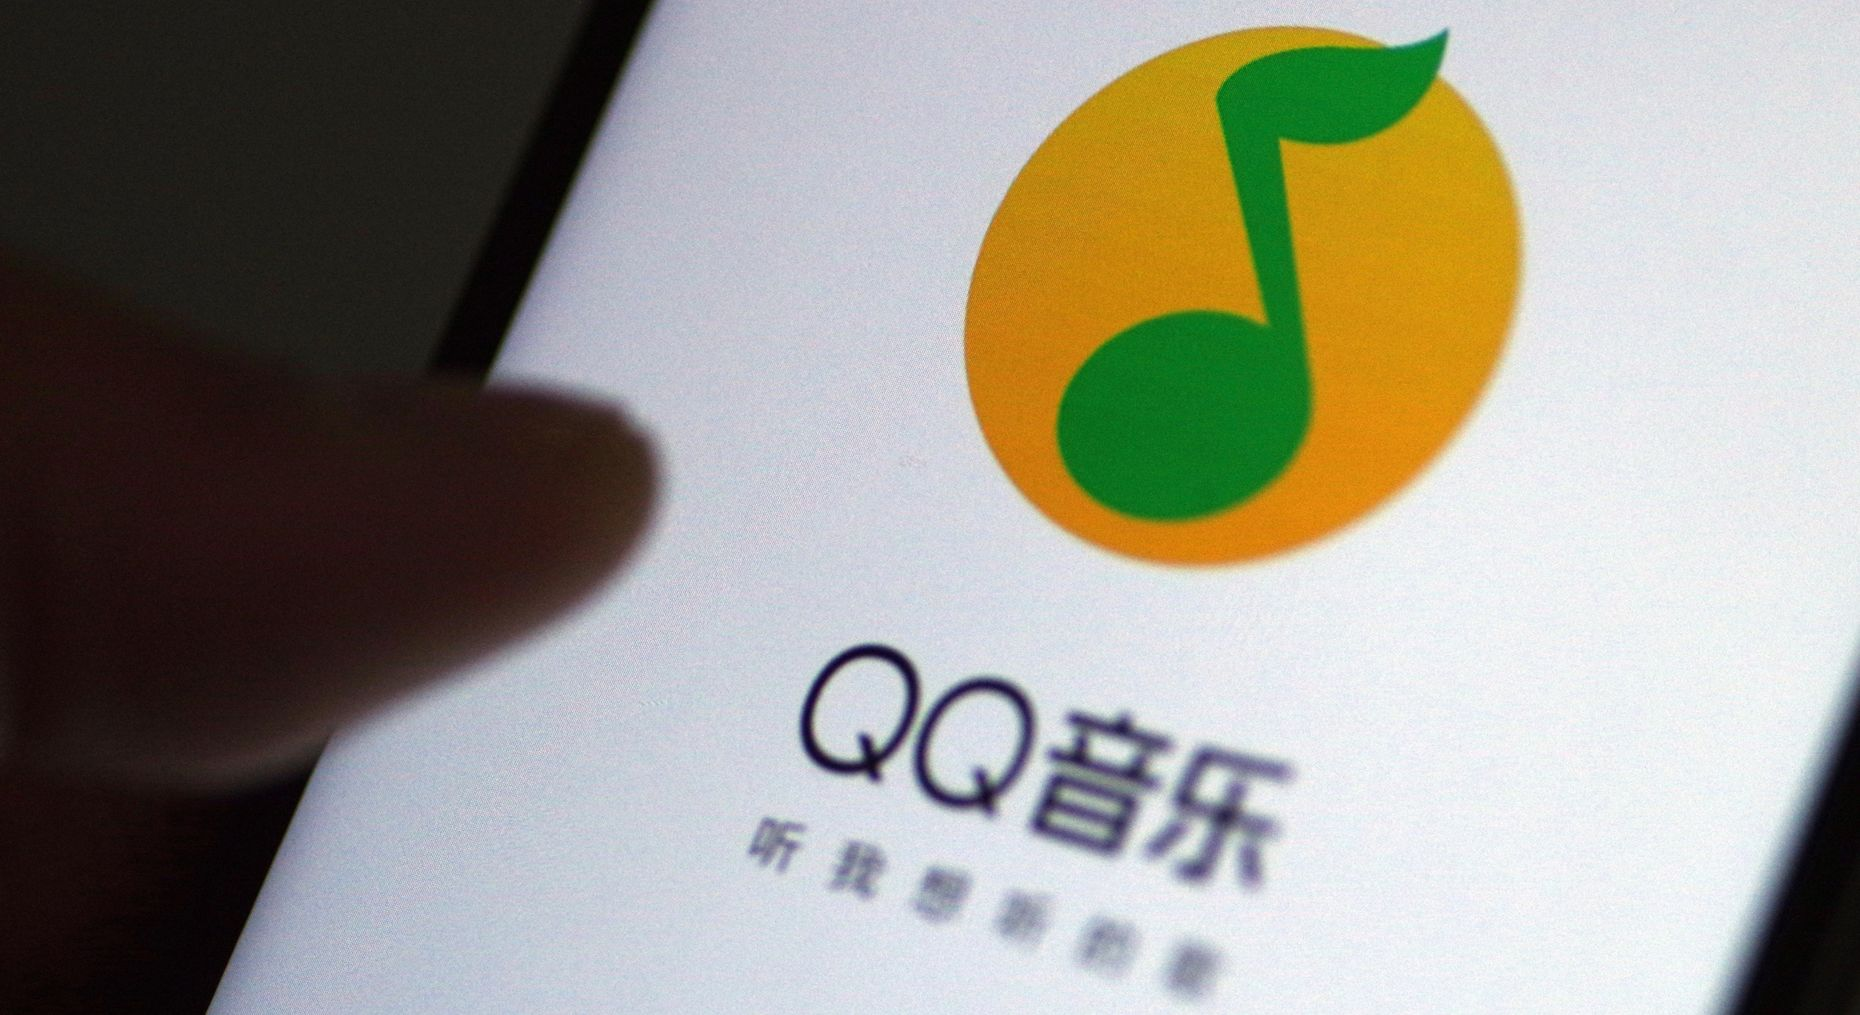 Tencent Music's QQ music streaming app on a phone in China last March. Photo by AP